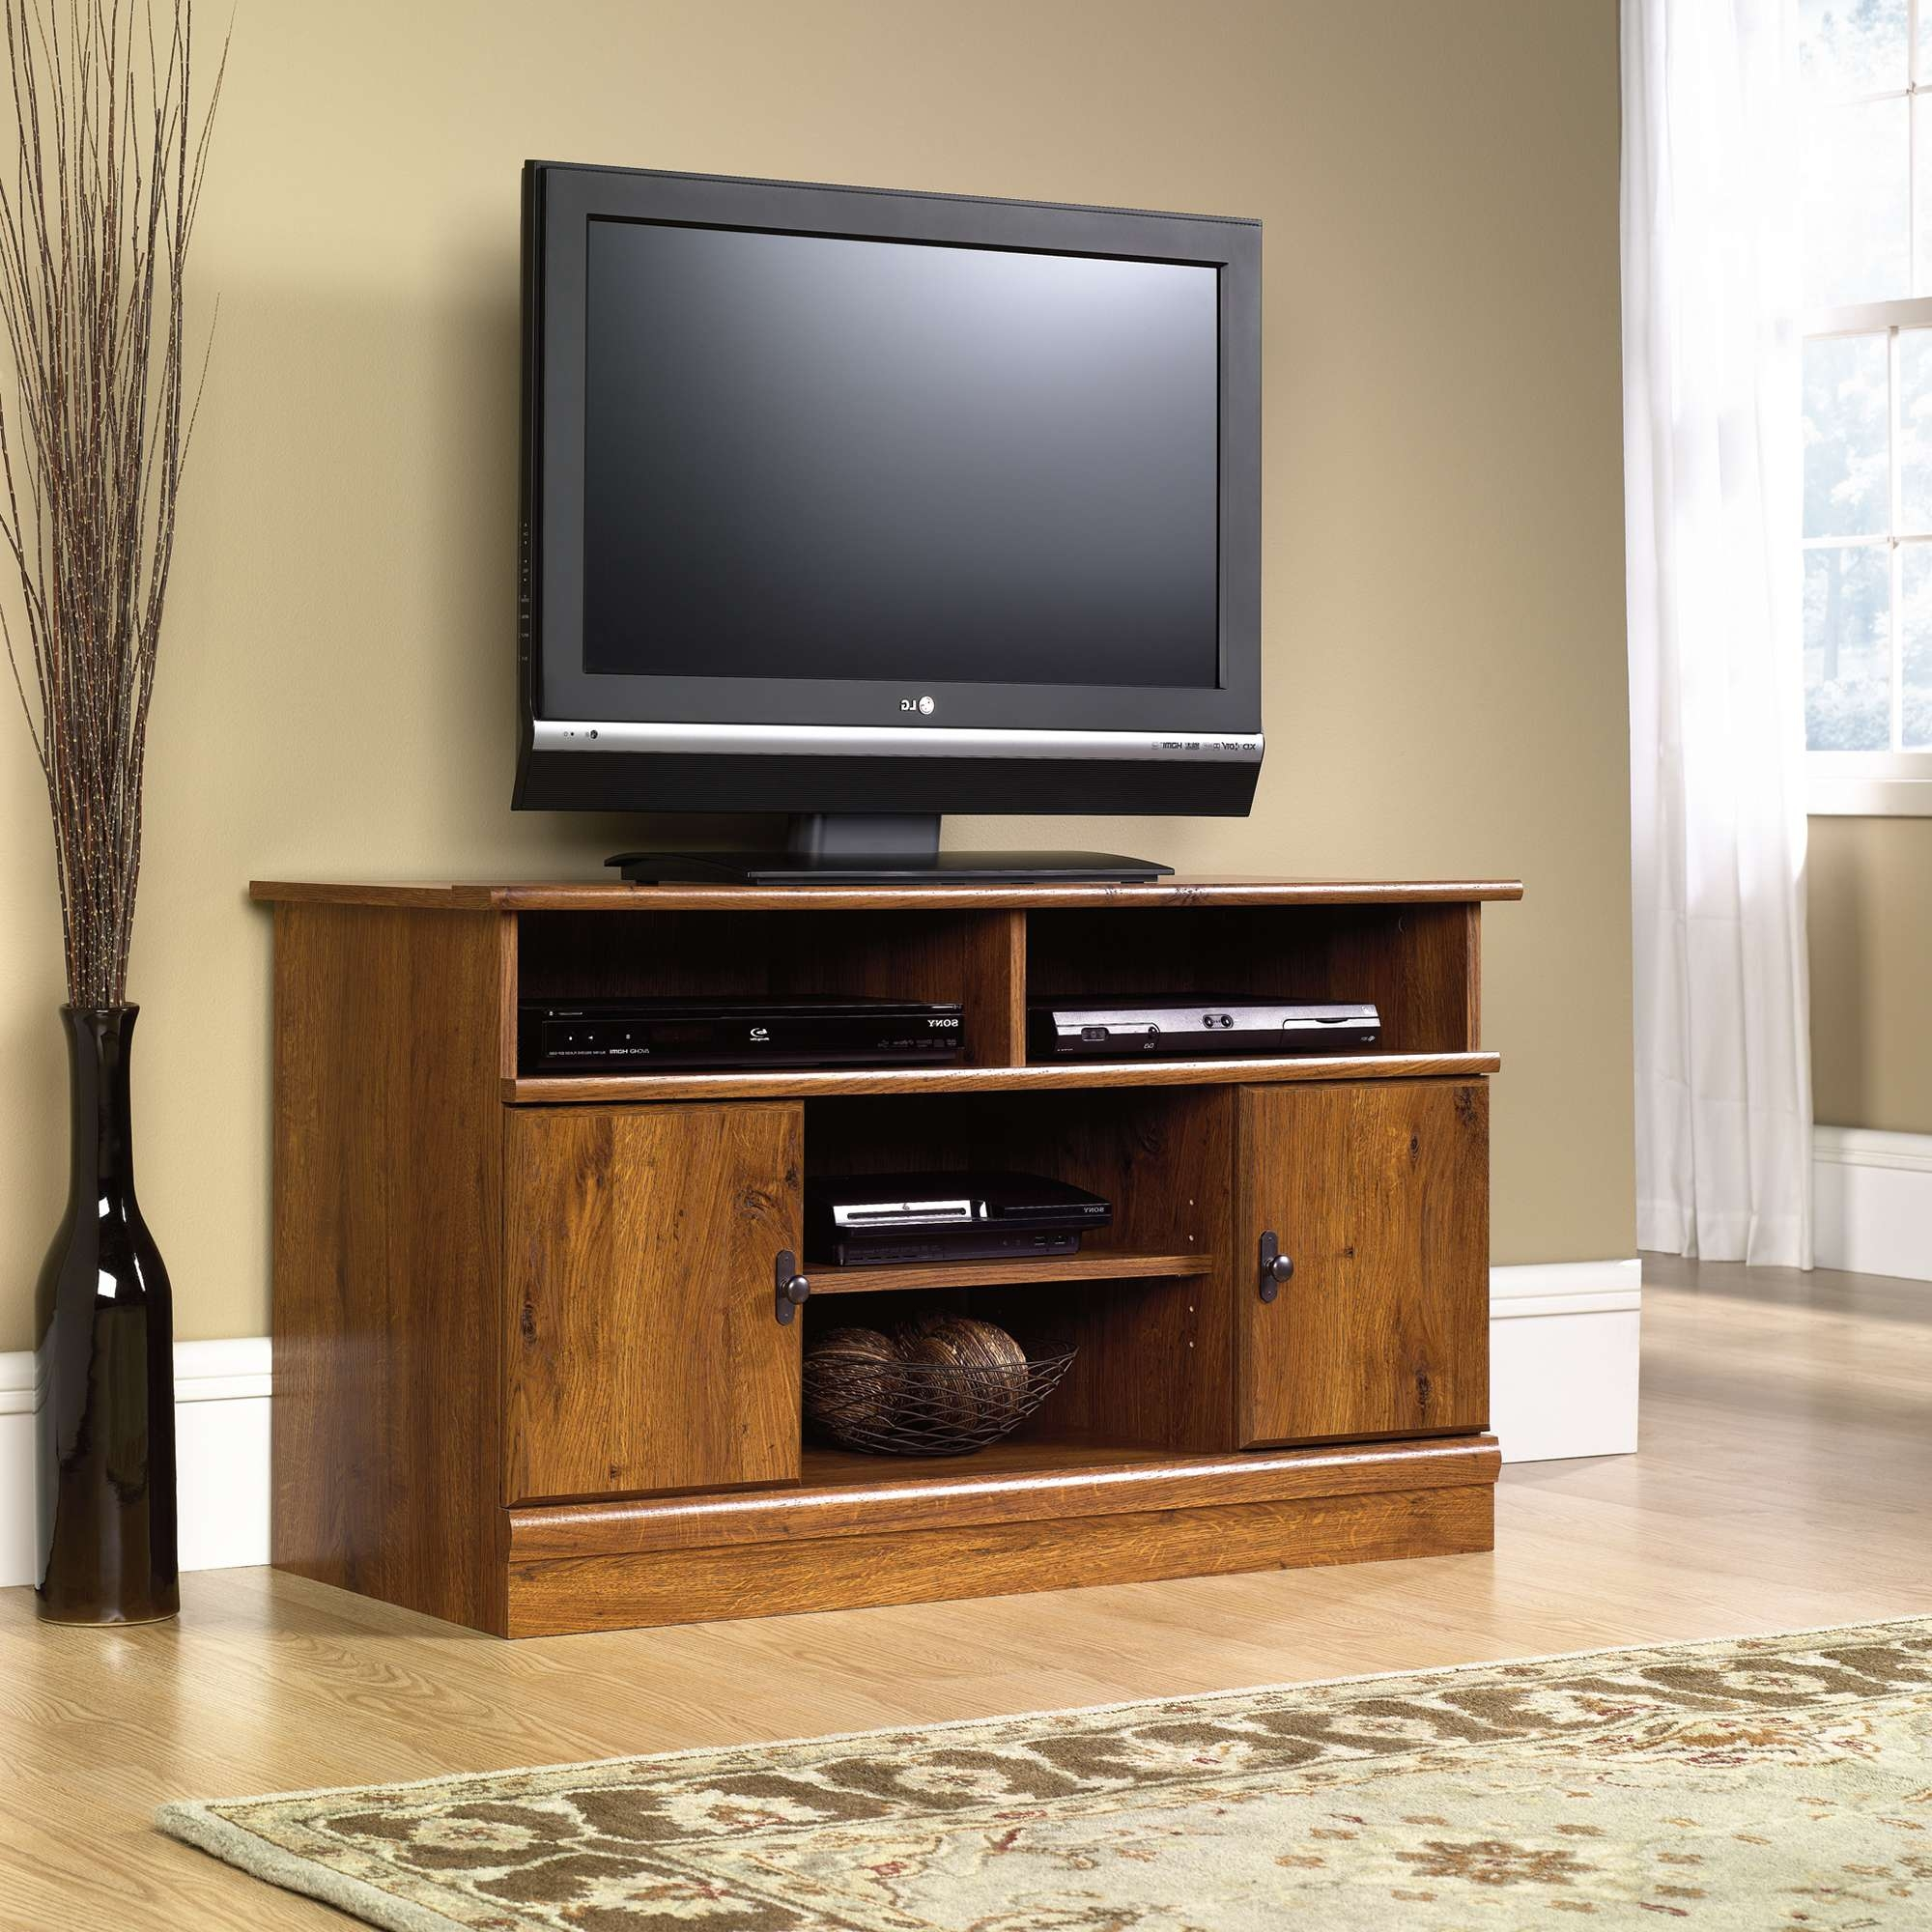 Harvest Mill | Panel Tv Stand | 407432 | Sauder In Tv Stands For 43 Inch Tv (View 6 of 15)